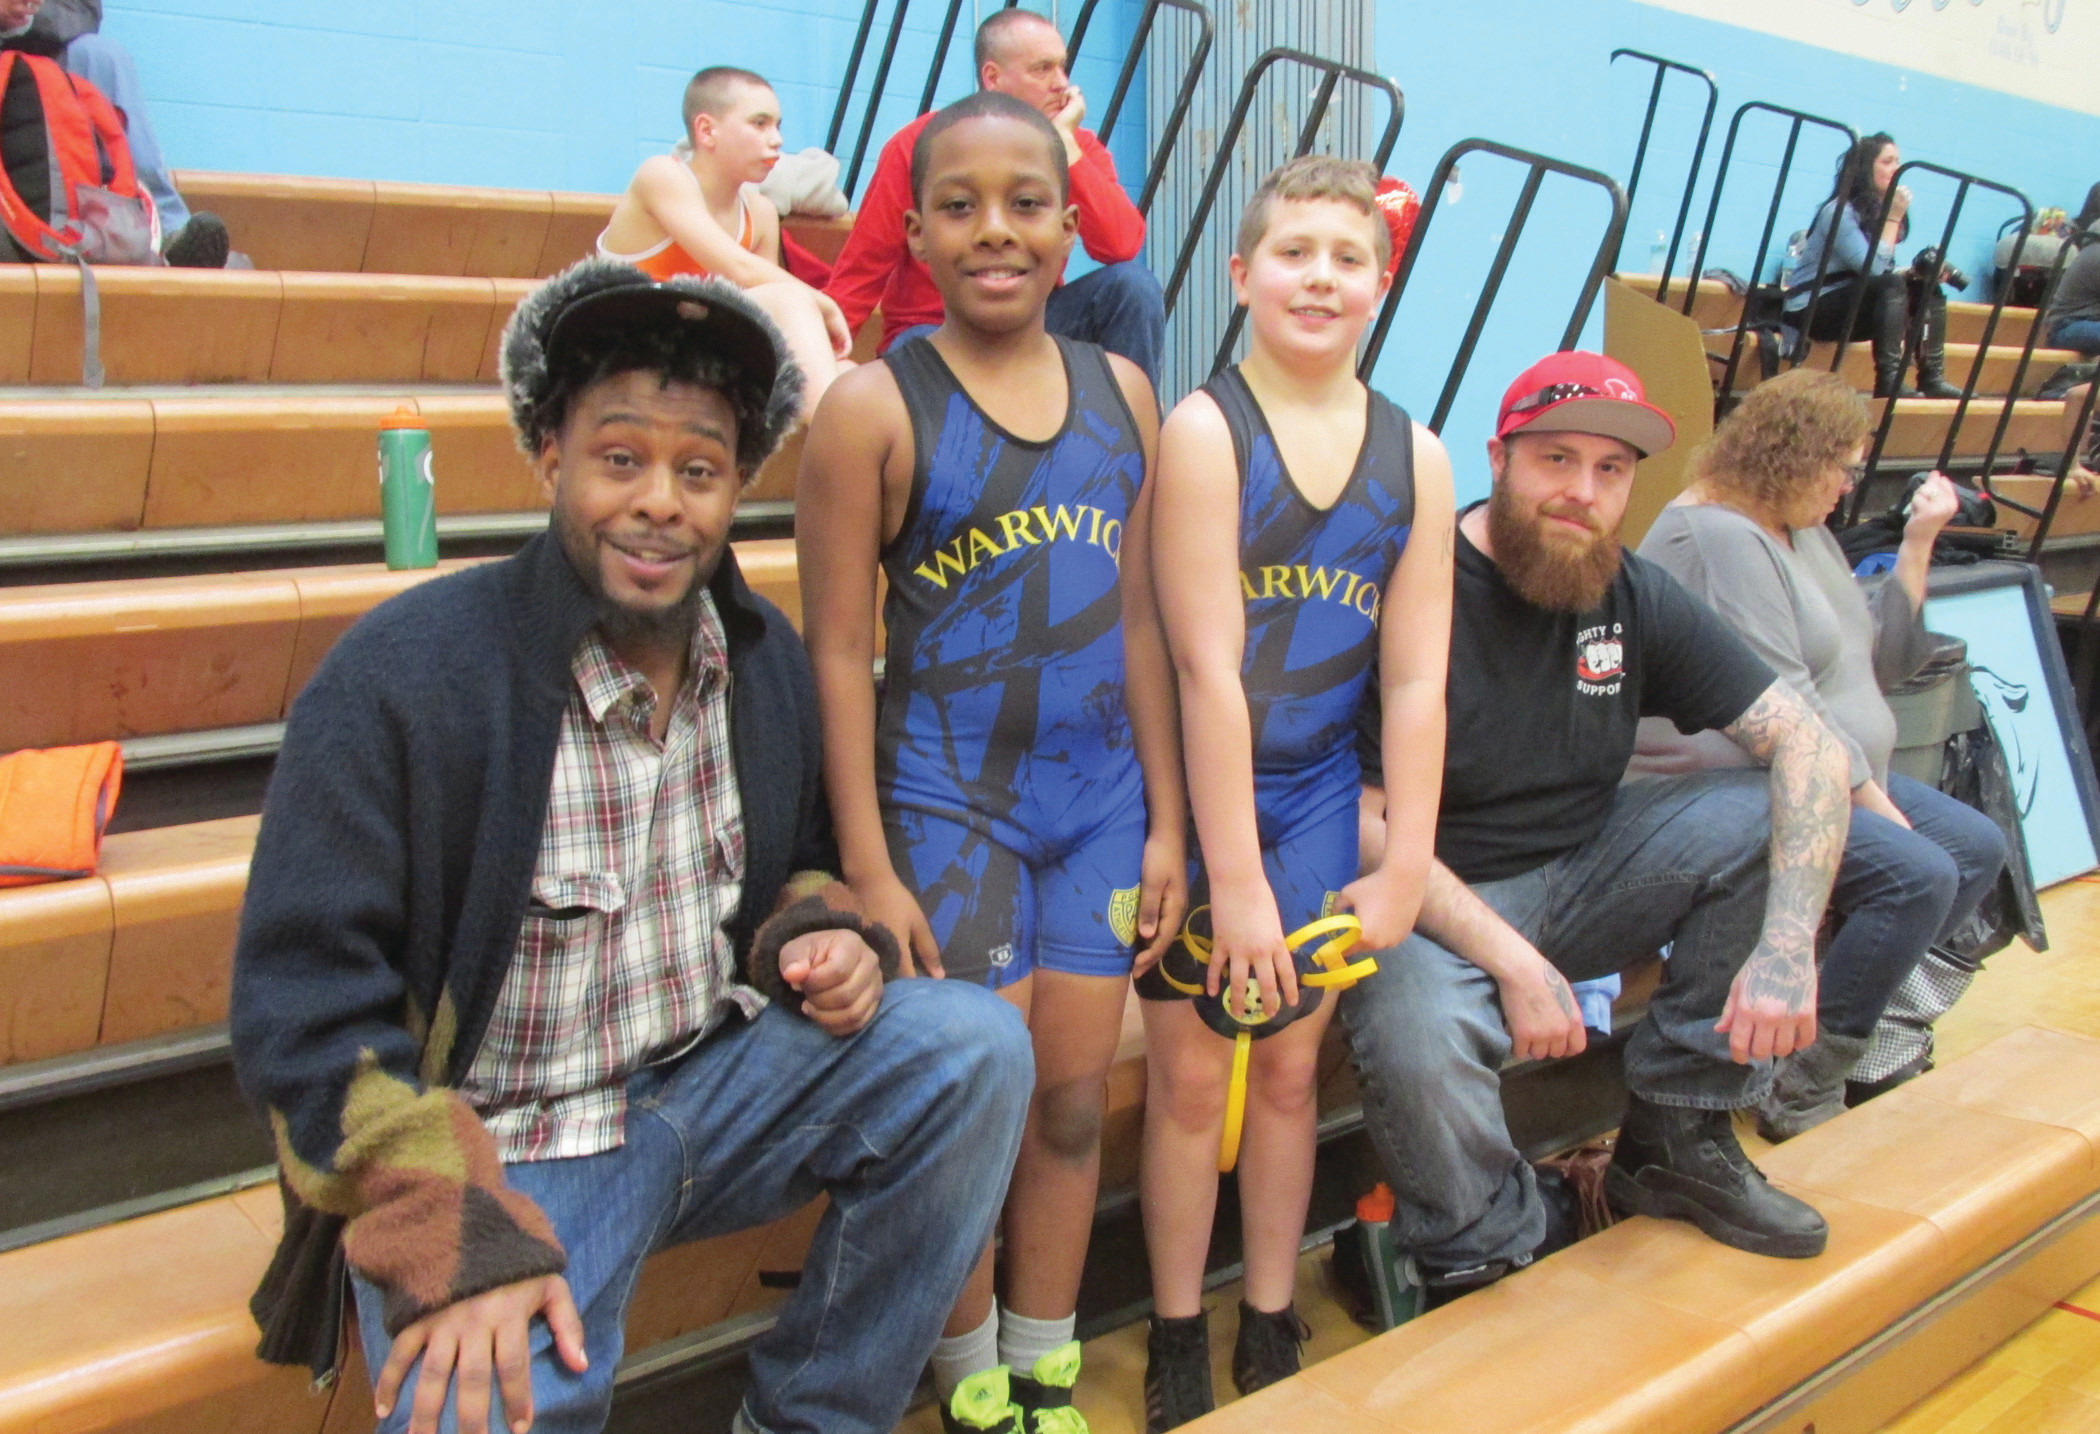 PAL wrestlers compete in Johnston Youth Wrestling Tournament